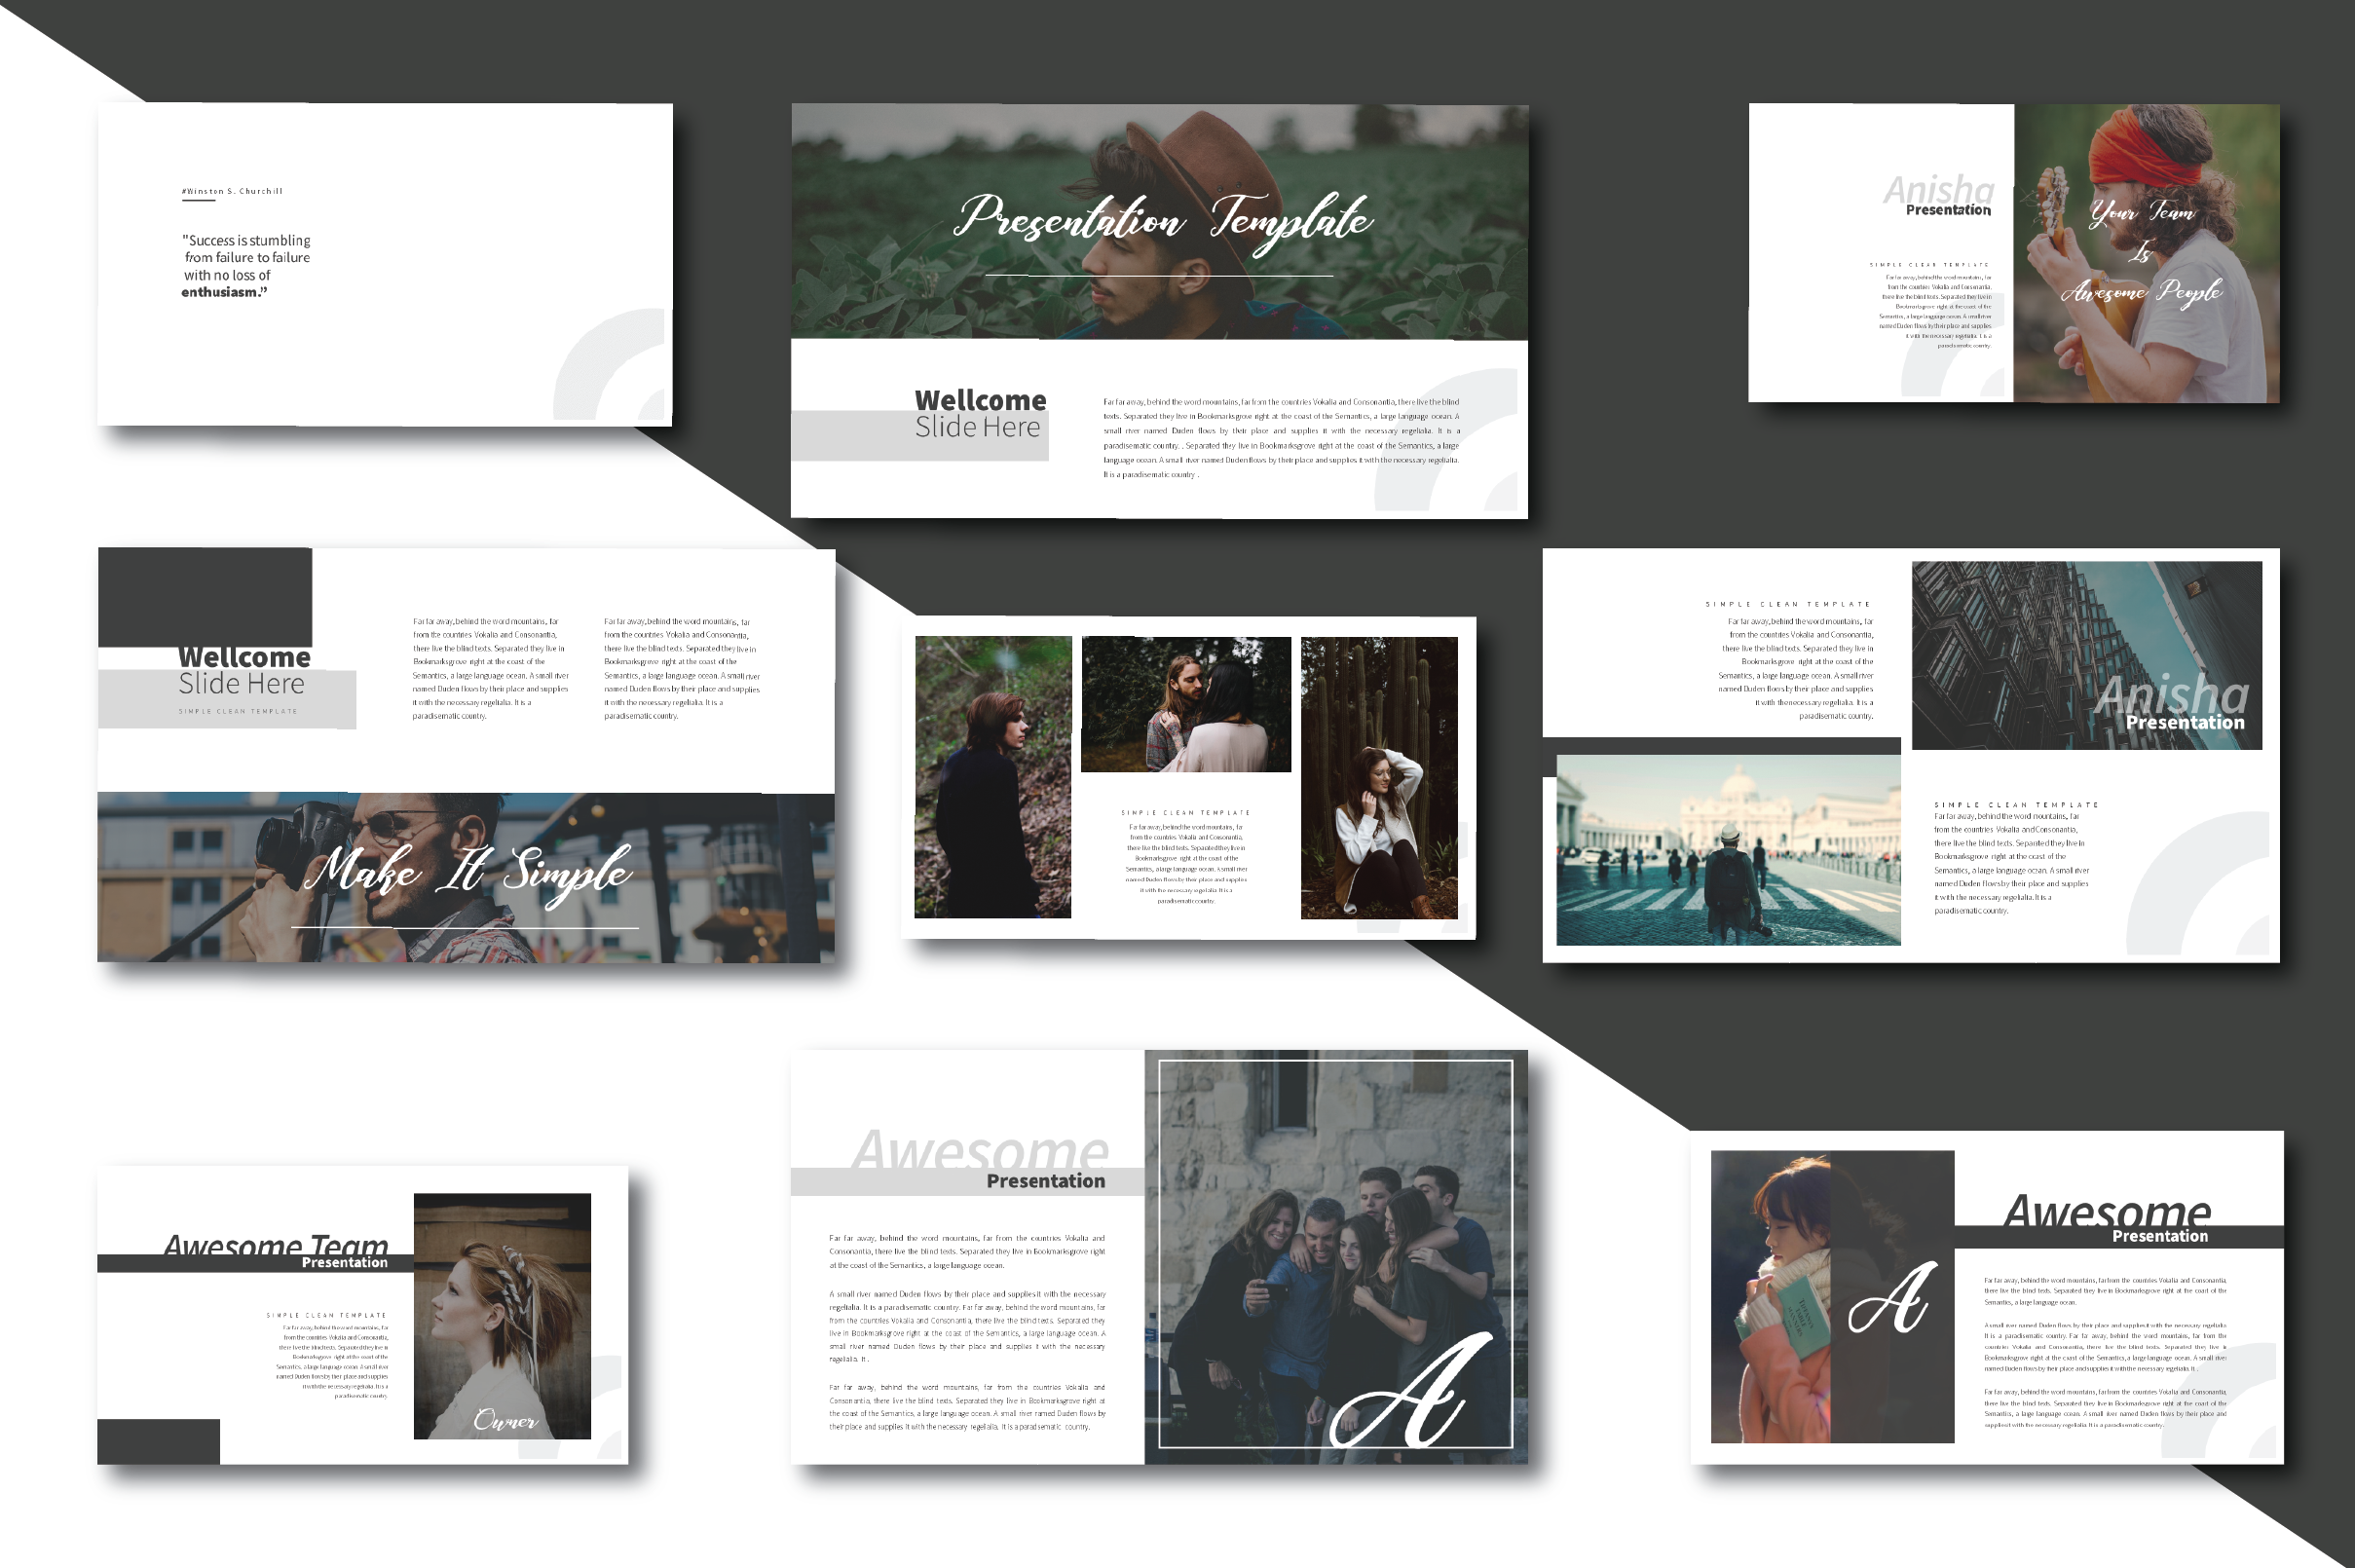 Anisha Simple Clean Template example image 4